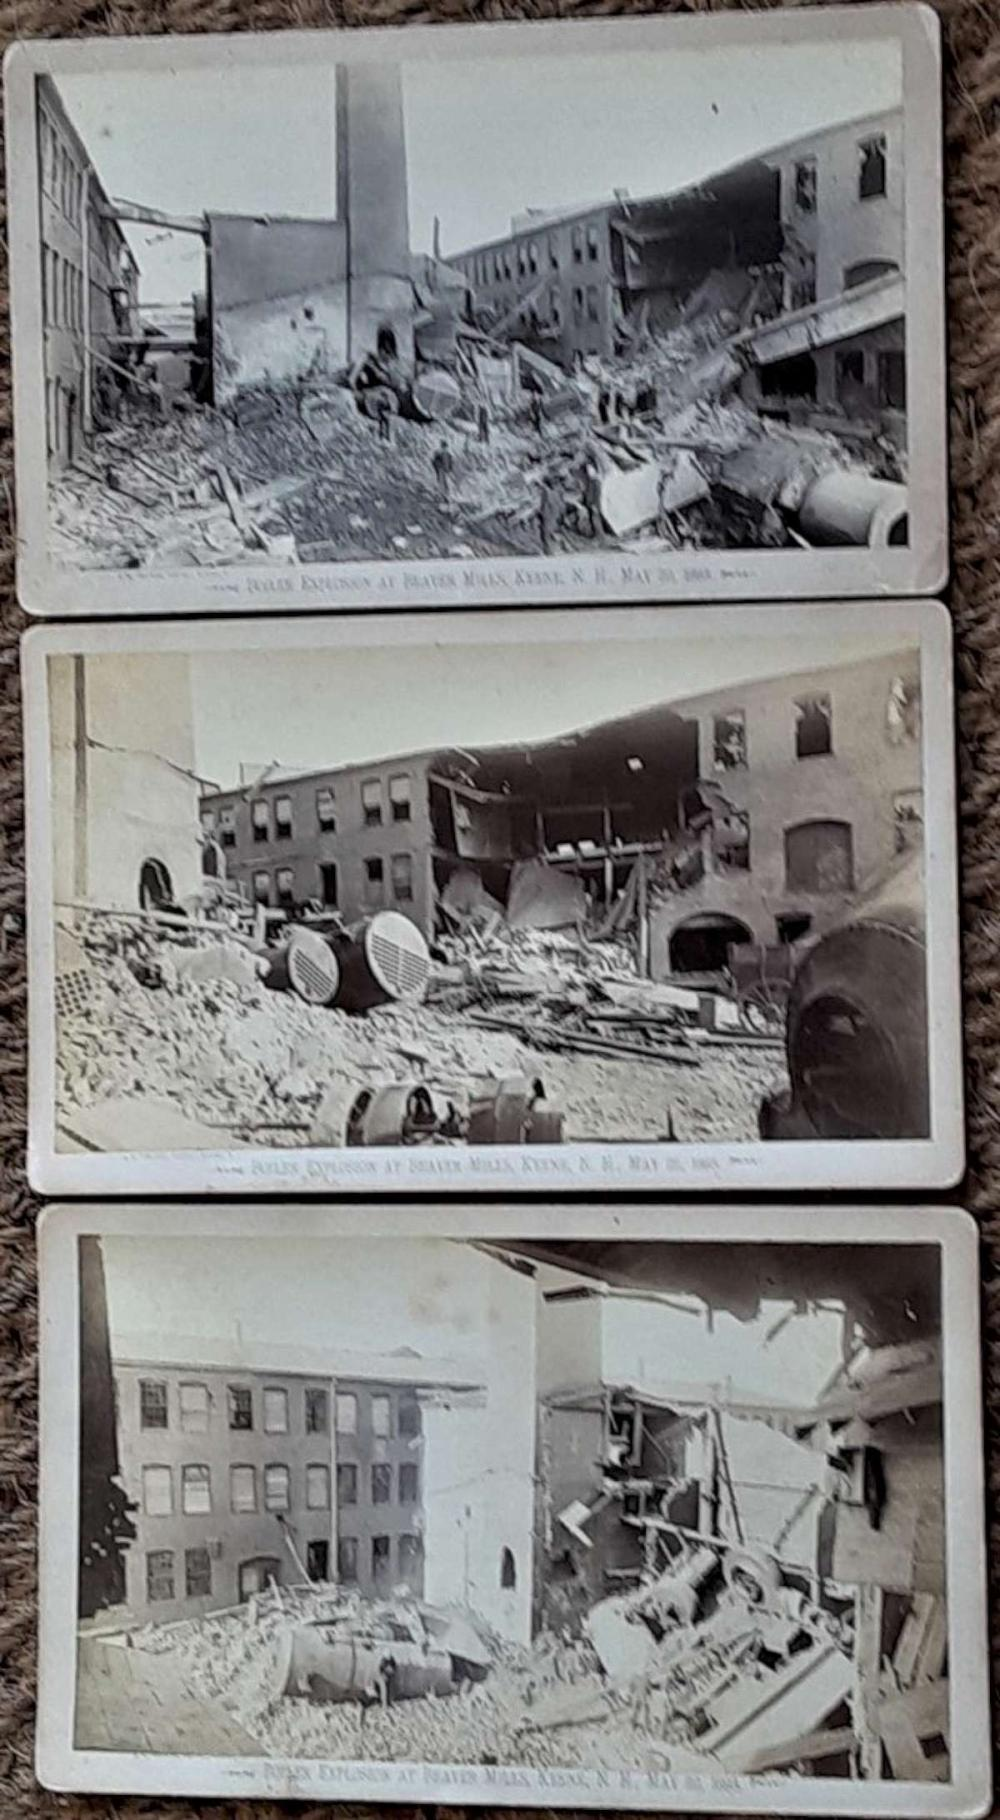 set of 3 cabinet photographs of factory explosion